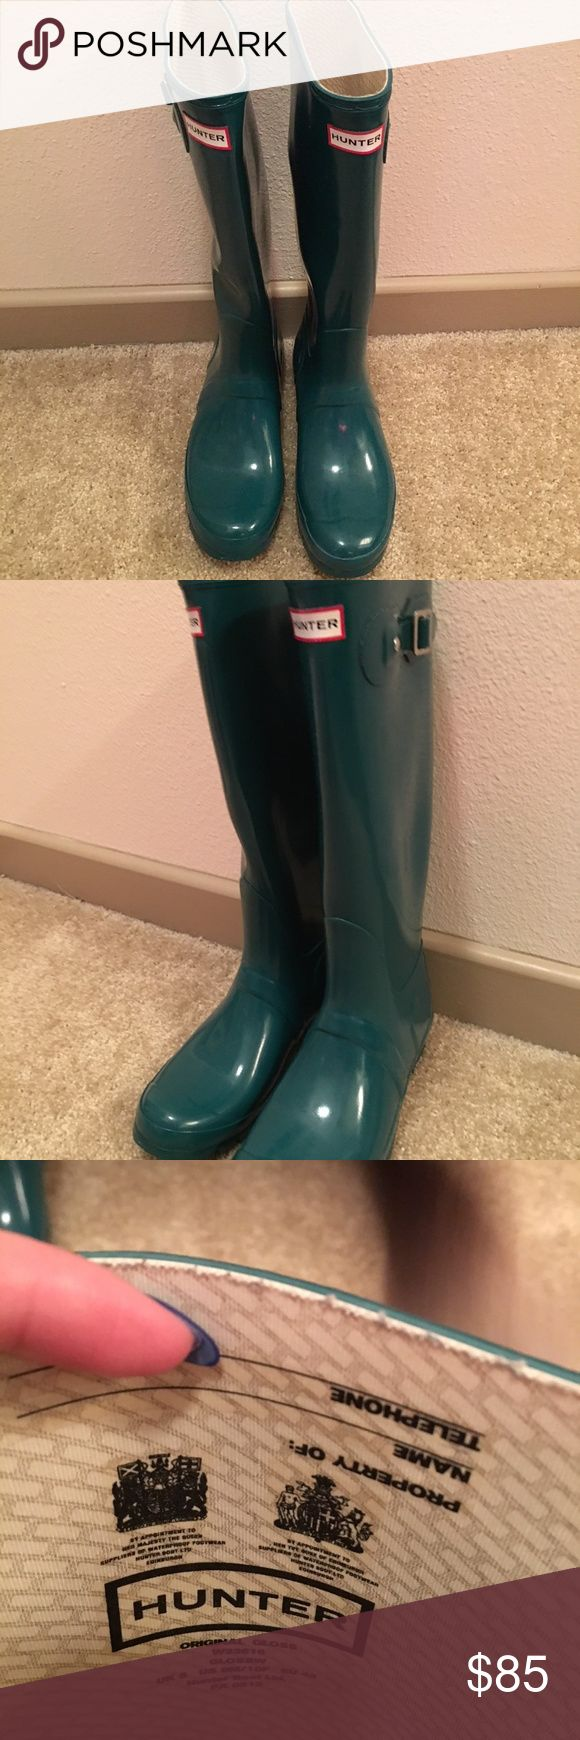 Hunter Rain Boots These are the Original Gloss Hunter Rain Boots. The color is Teal. I have worn them twice. I moved to Dallas and don't have much use for them anymore.  The size is US Women's 10/ Men's 9 Hunter Shoes Winter & Rain Boots